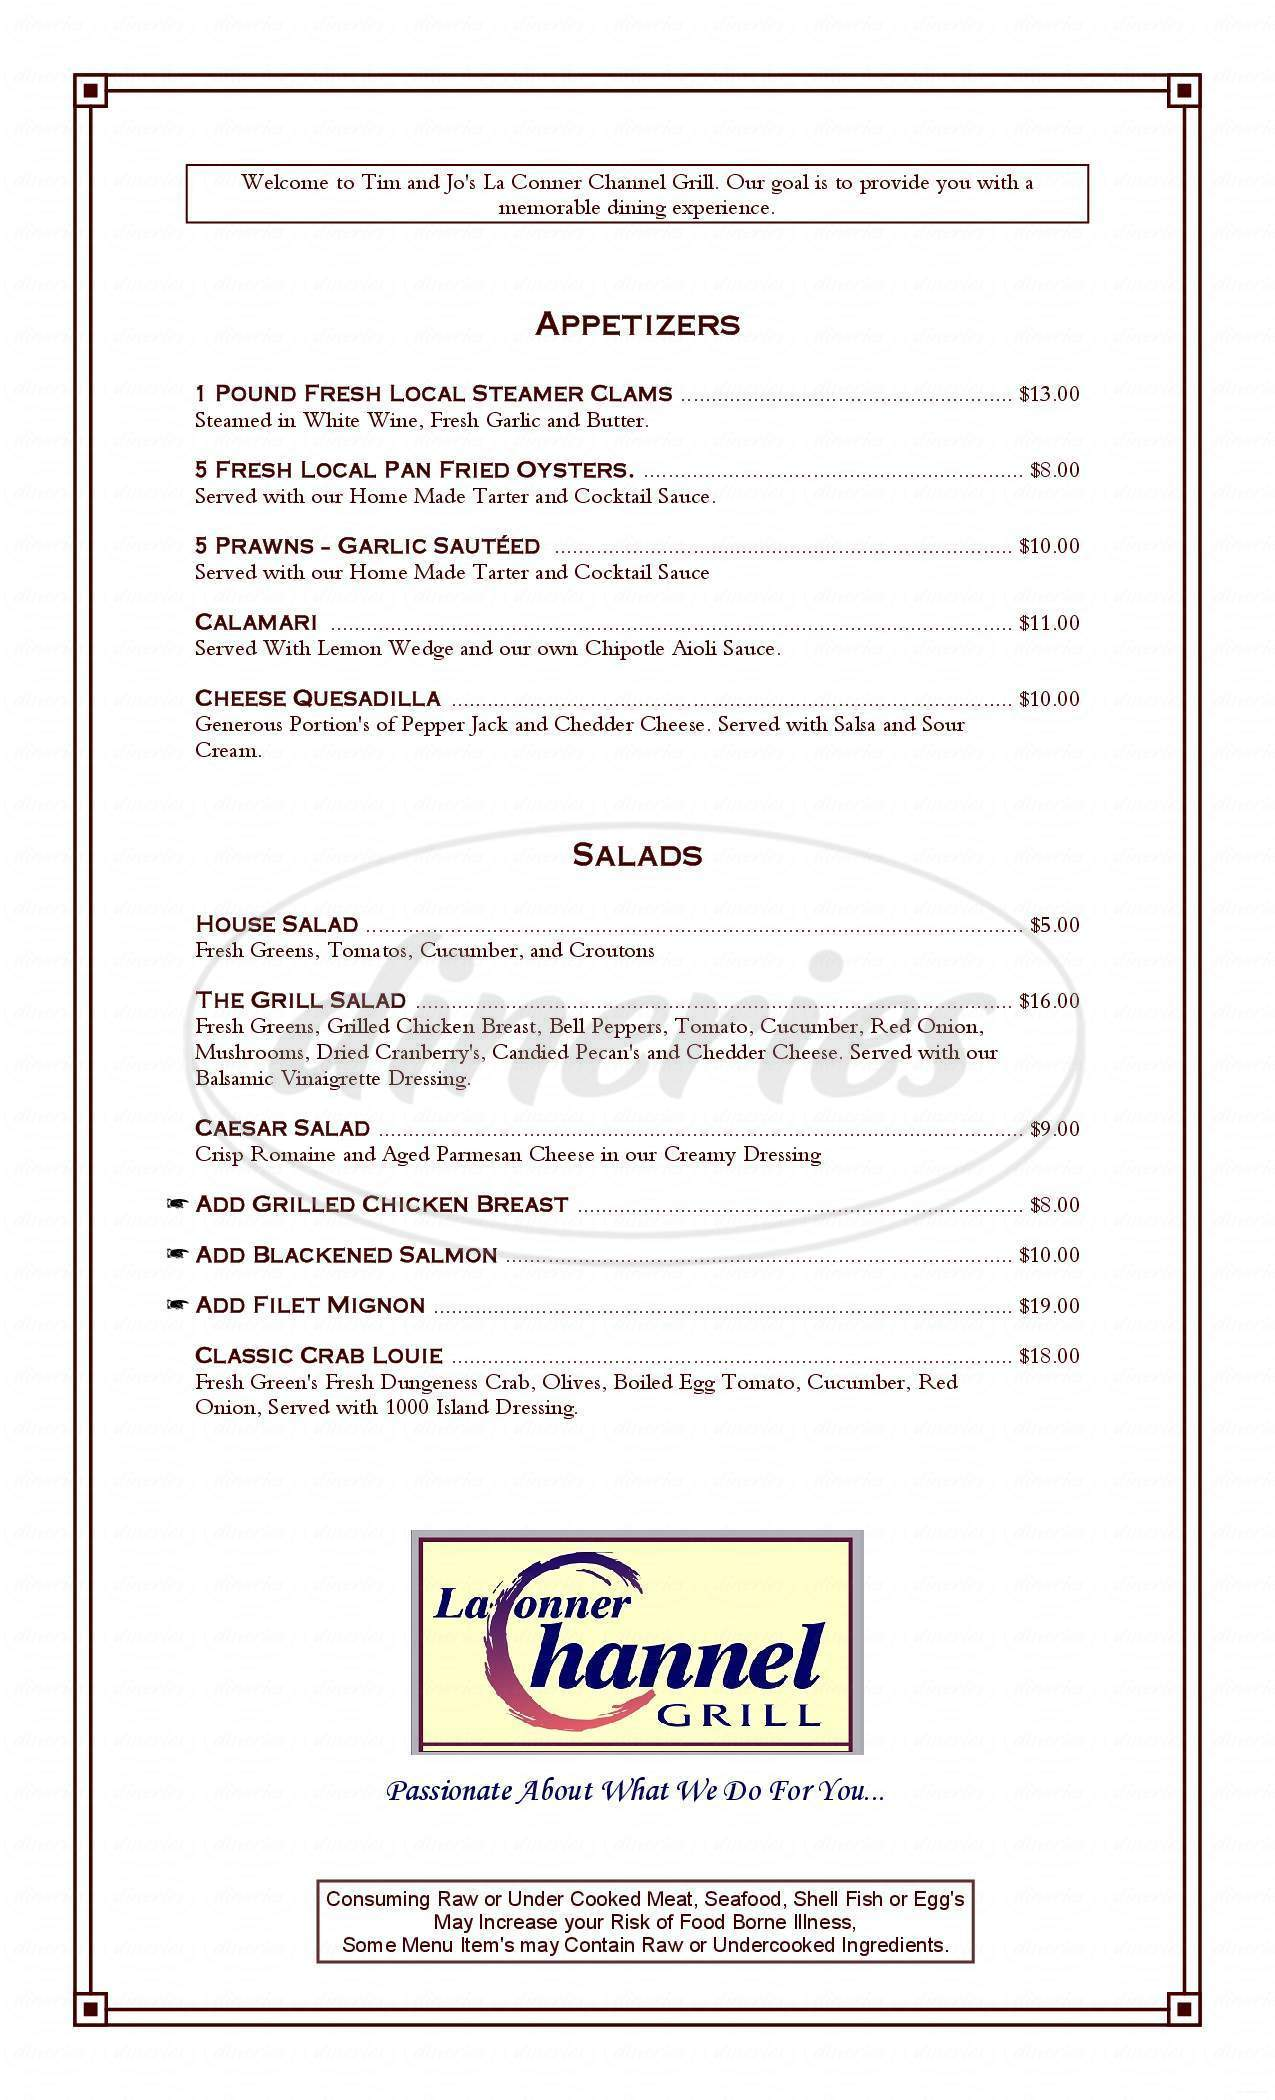 menu for La Conner Channel Grill